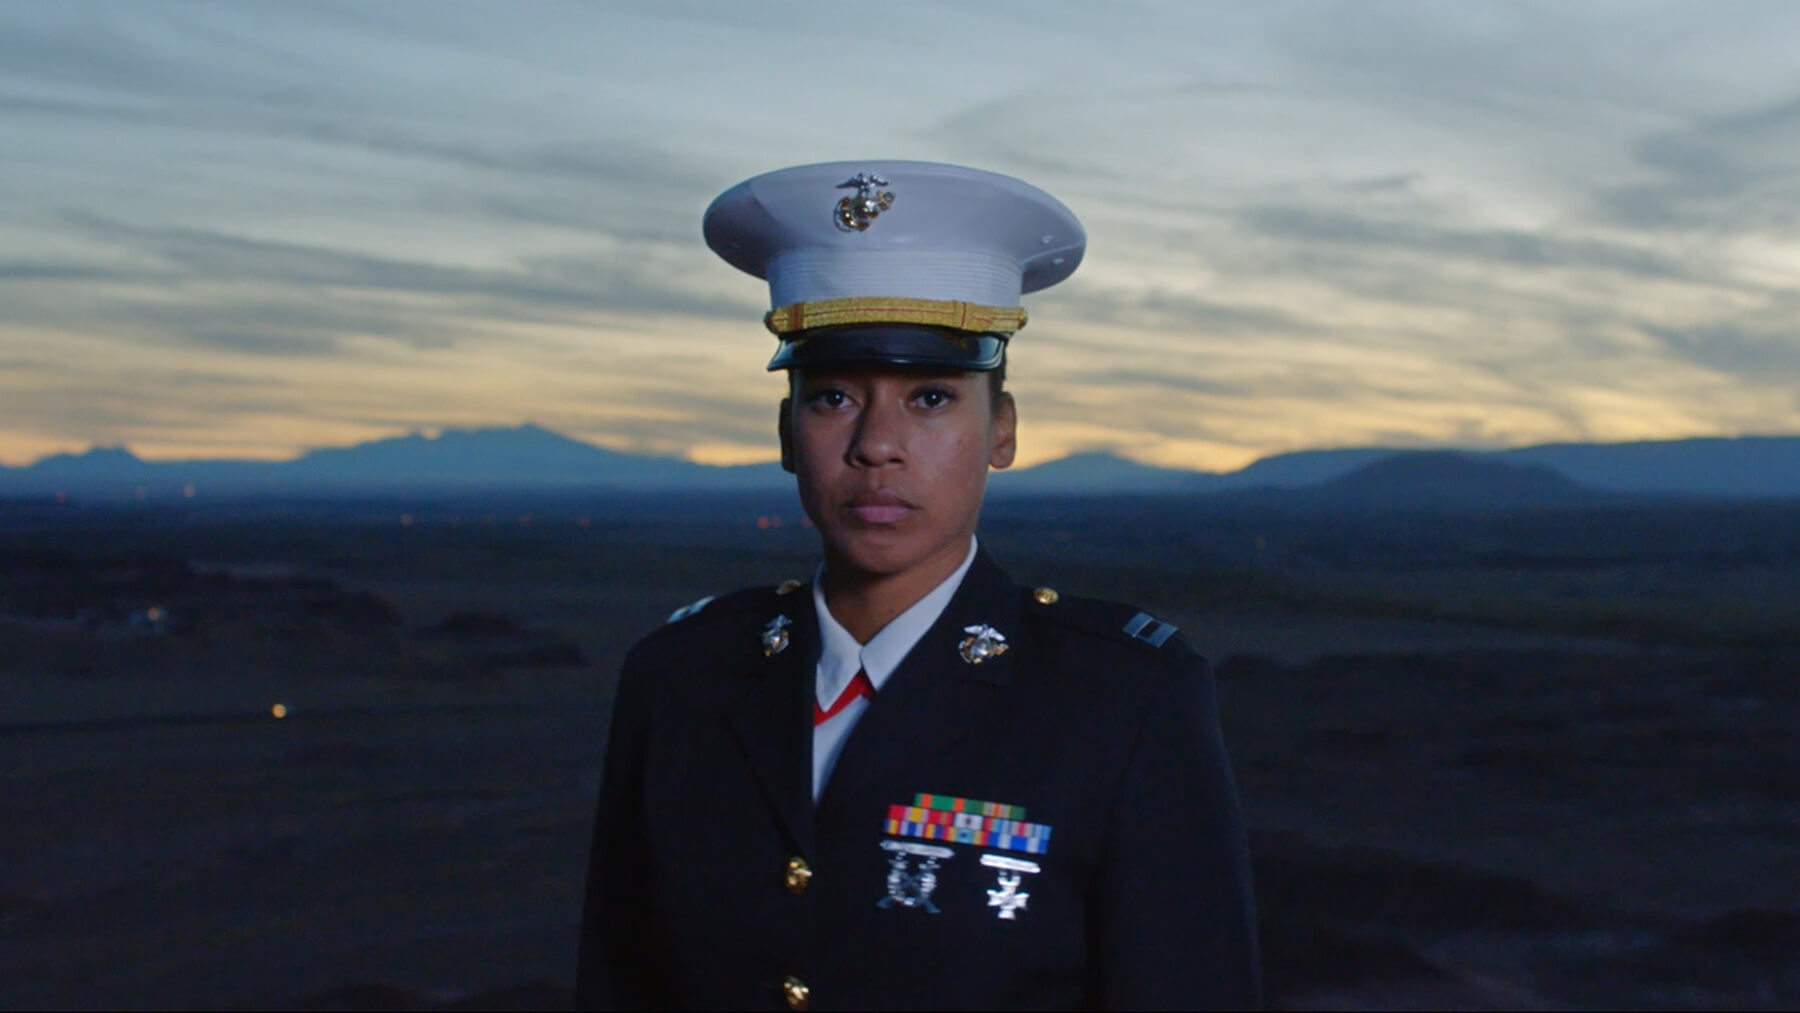 Long form video highlighting Capt Ashley McMillan, United States Marine and Navajo.